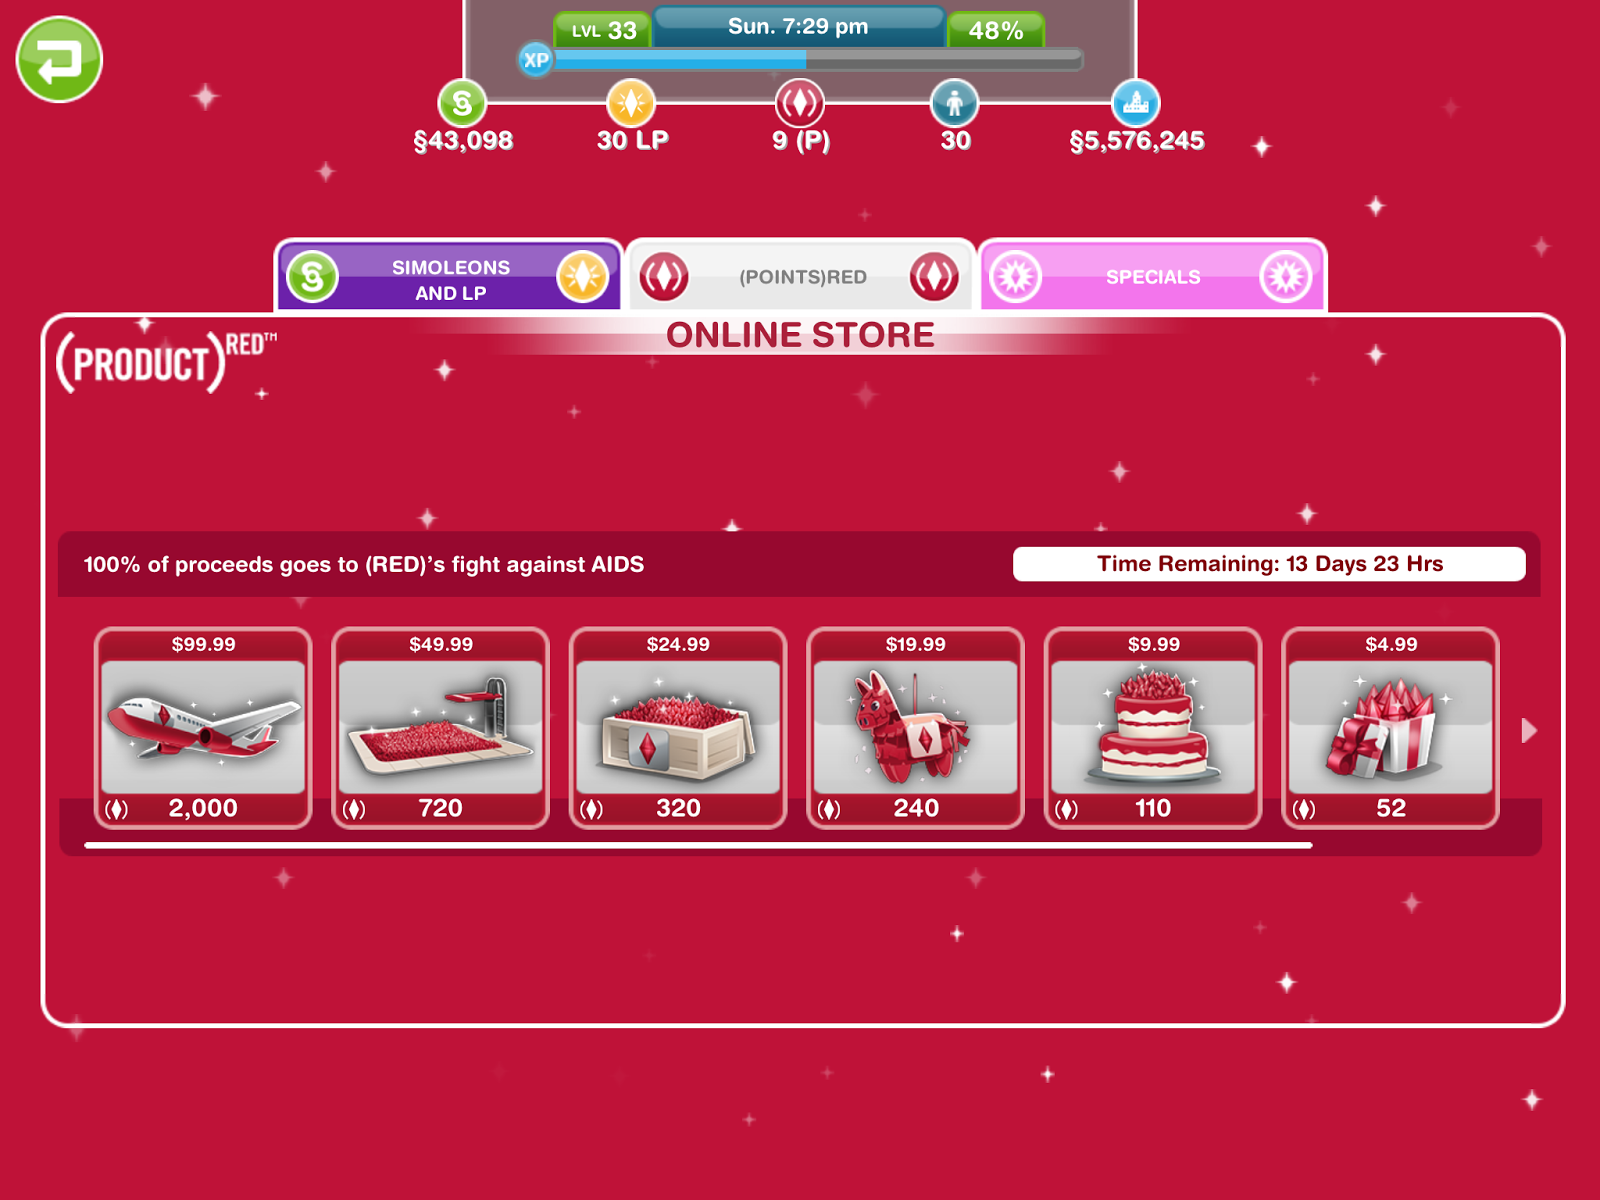 Missy39s Sims And Stuff The Sims Freeplay RED Flowers Of Sim